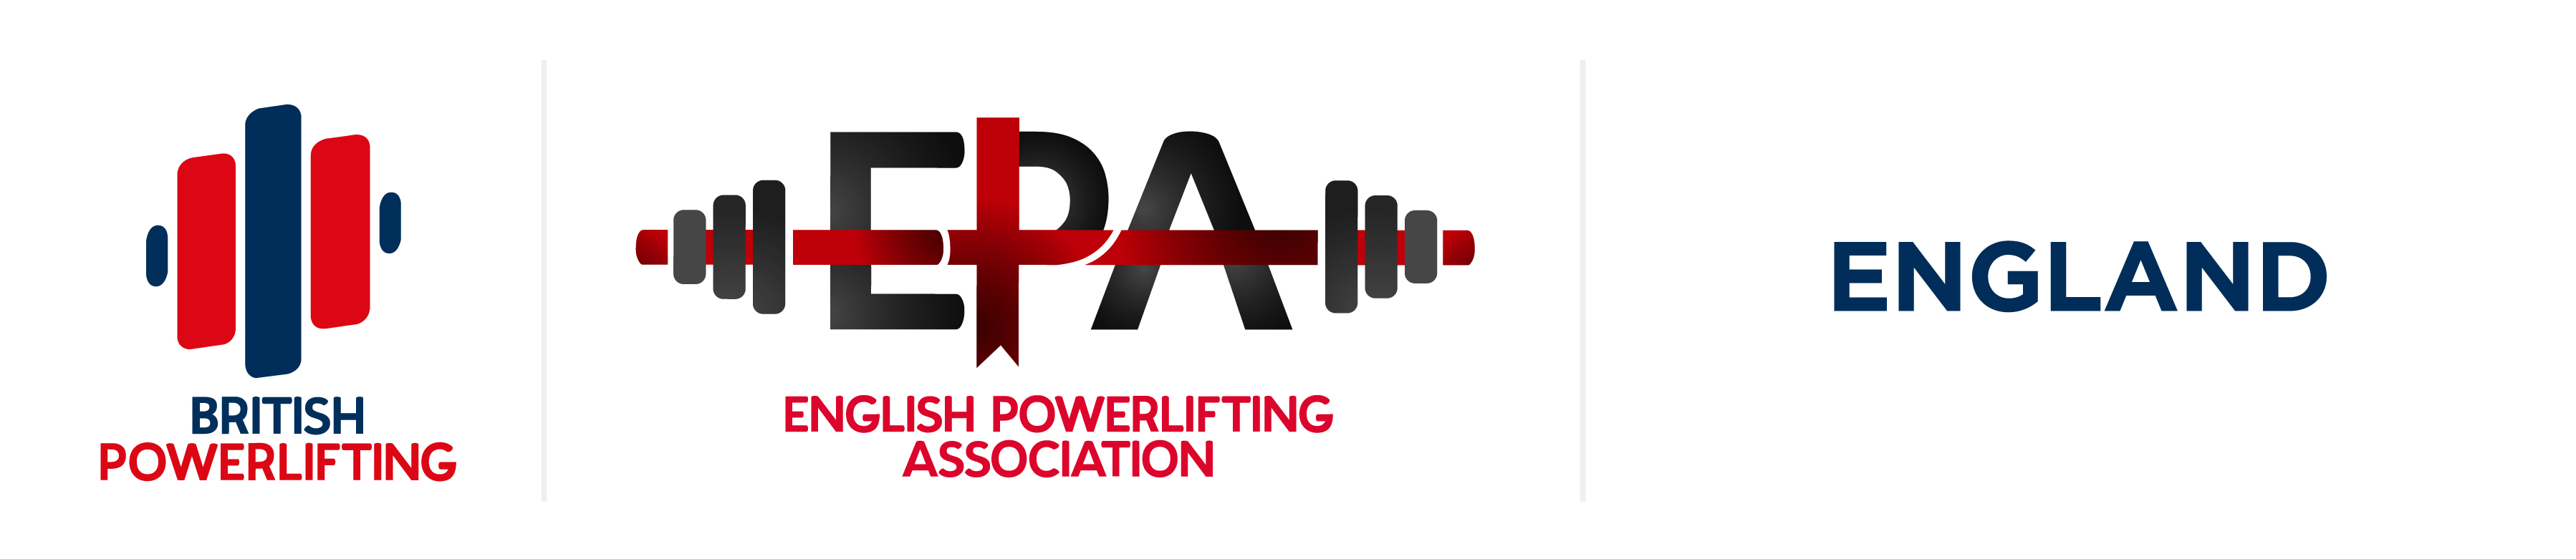 English Powerlifting Logo